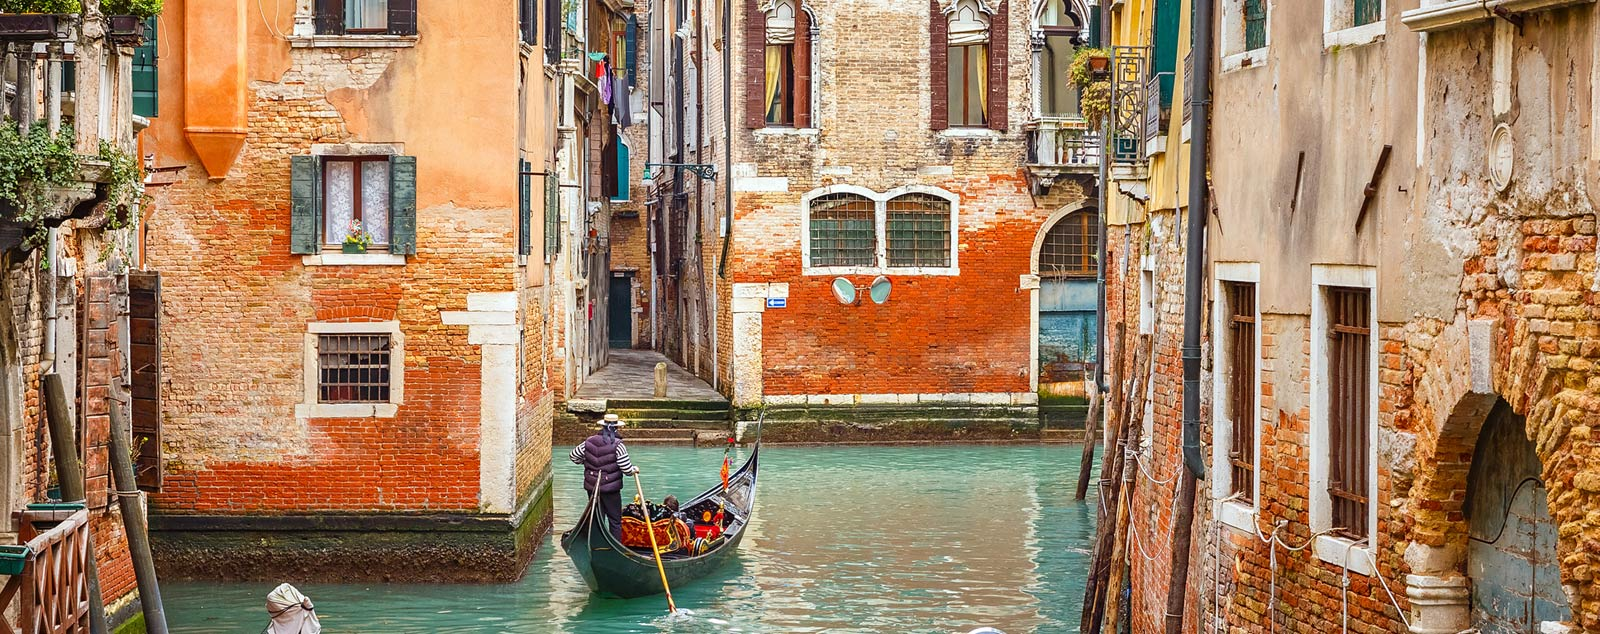 A gondola cruises between Venice's narrow waterways and typical red brick houses